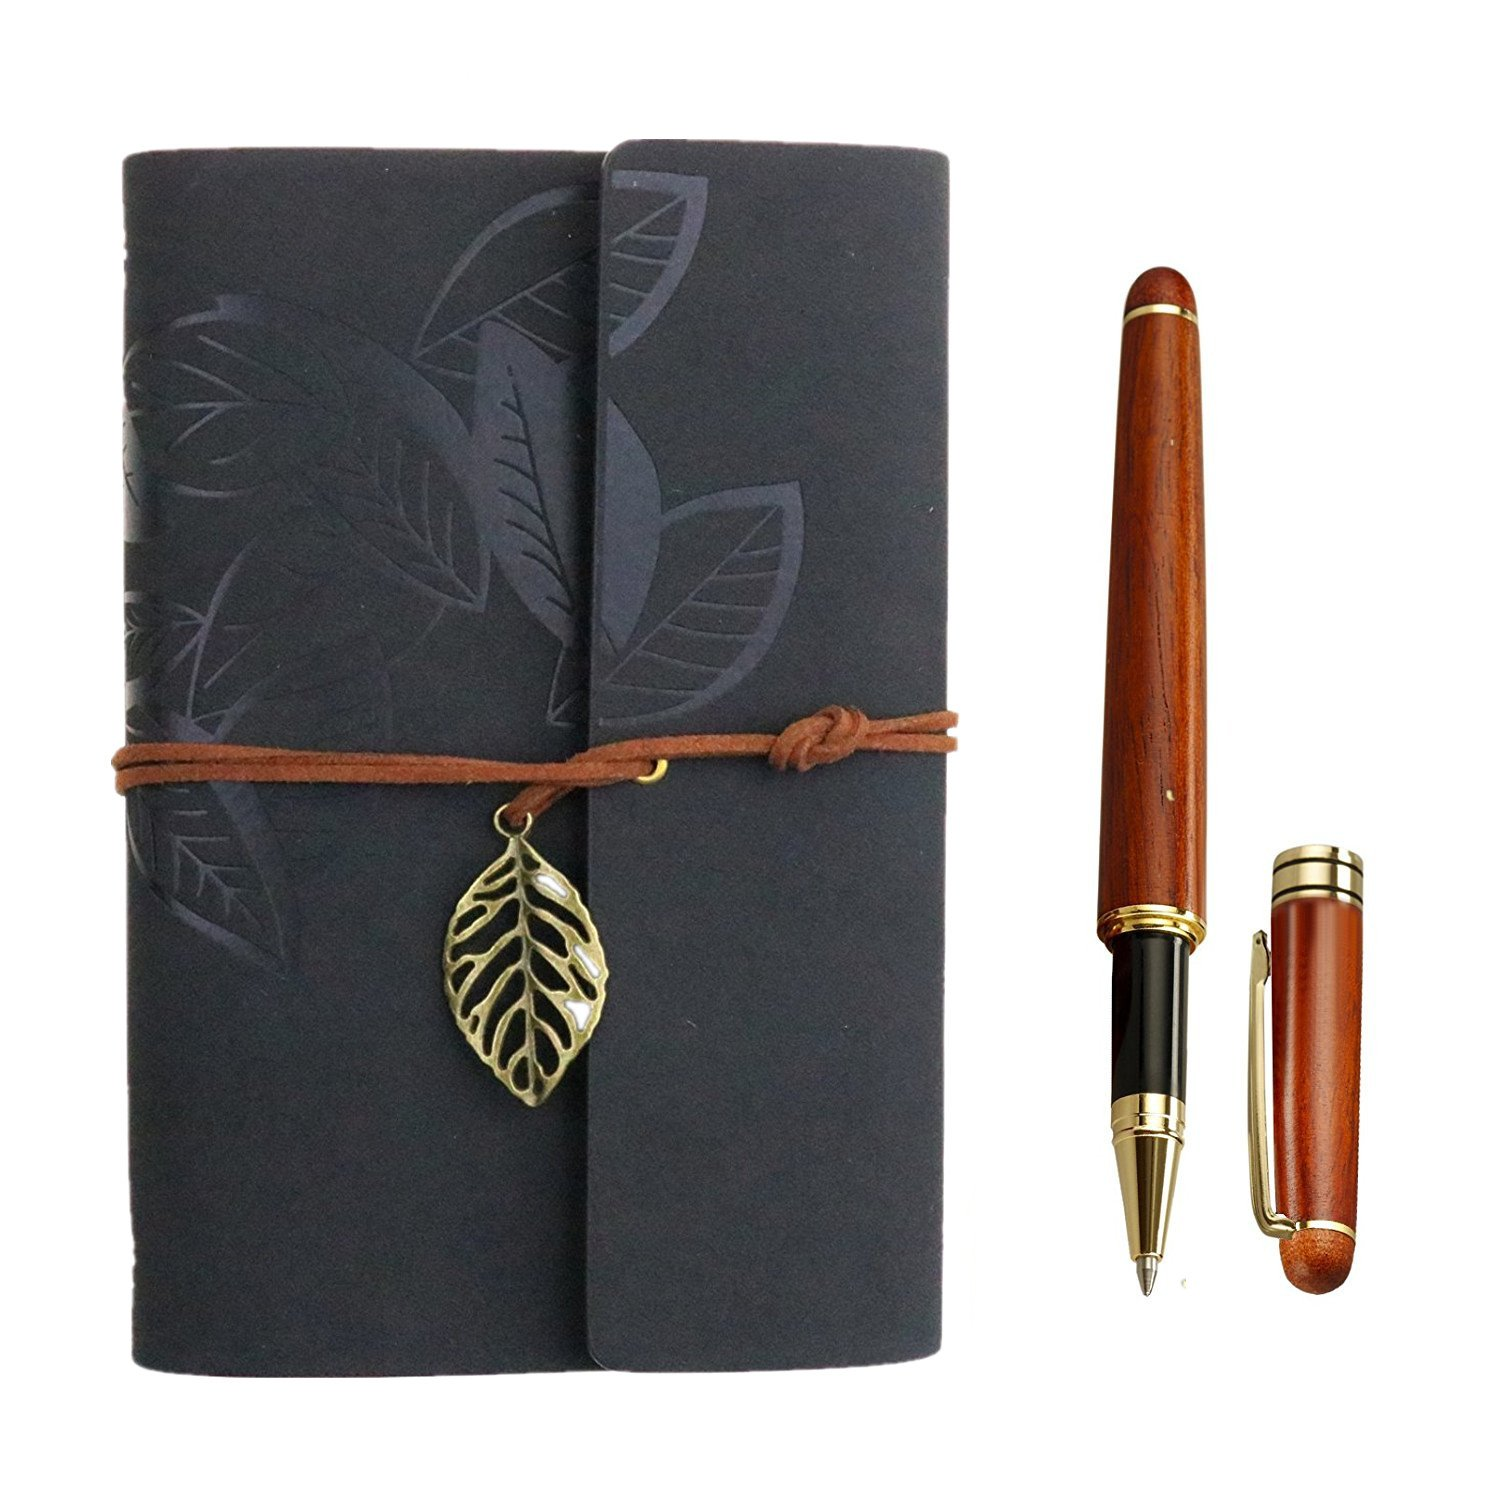 Loose Leaf Blank Leather Journal And Notebooks With Rosewood Ballpoint Pen Set, 7'' x 5'' Spiral journal Classic Spiral Bound Notebook Refillable Sketchbook Gifts, Journals To write In For Women-Black